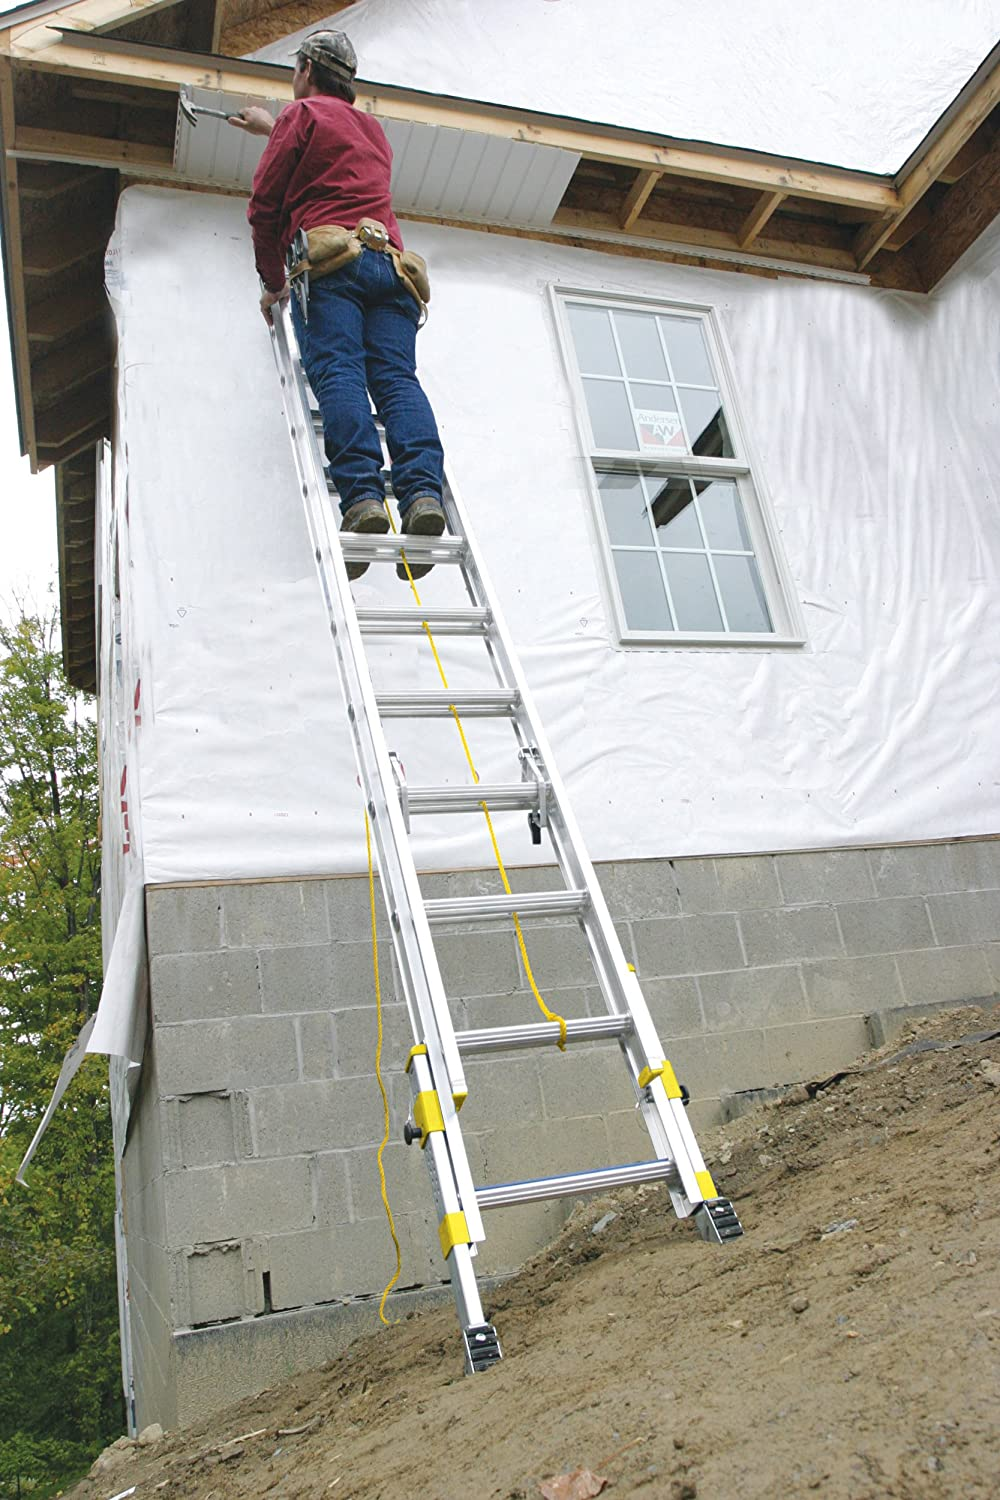 20-Foot Werner D18202EQ Equalizer 250-Pound Duty Rating Aluminum Extension Ladder with Integrated Leveling System